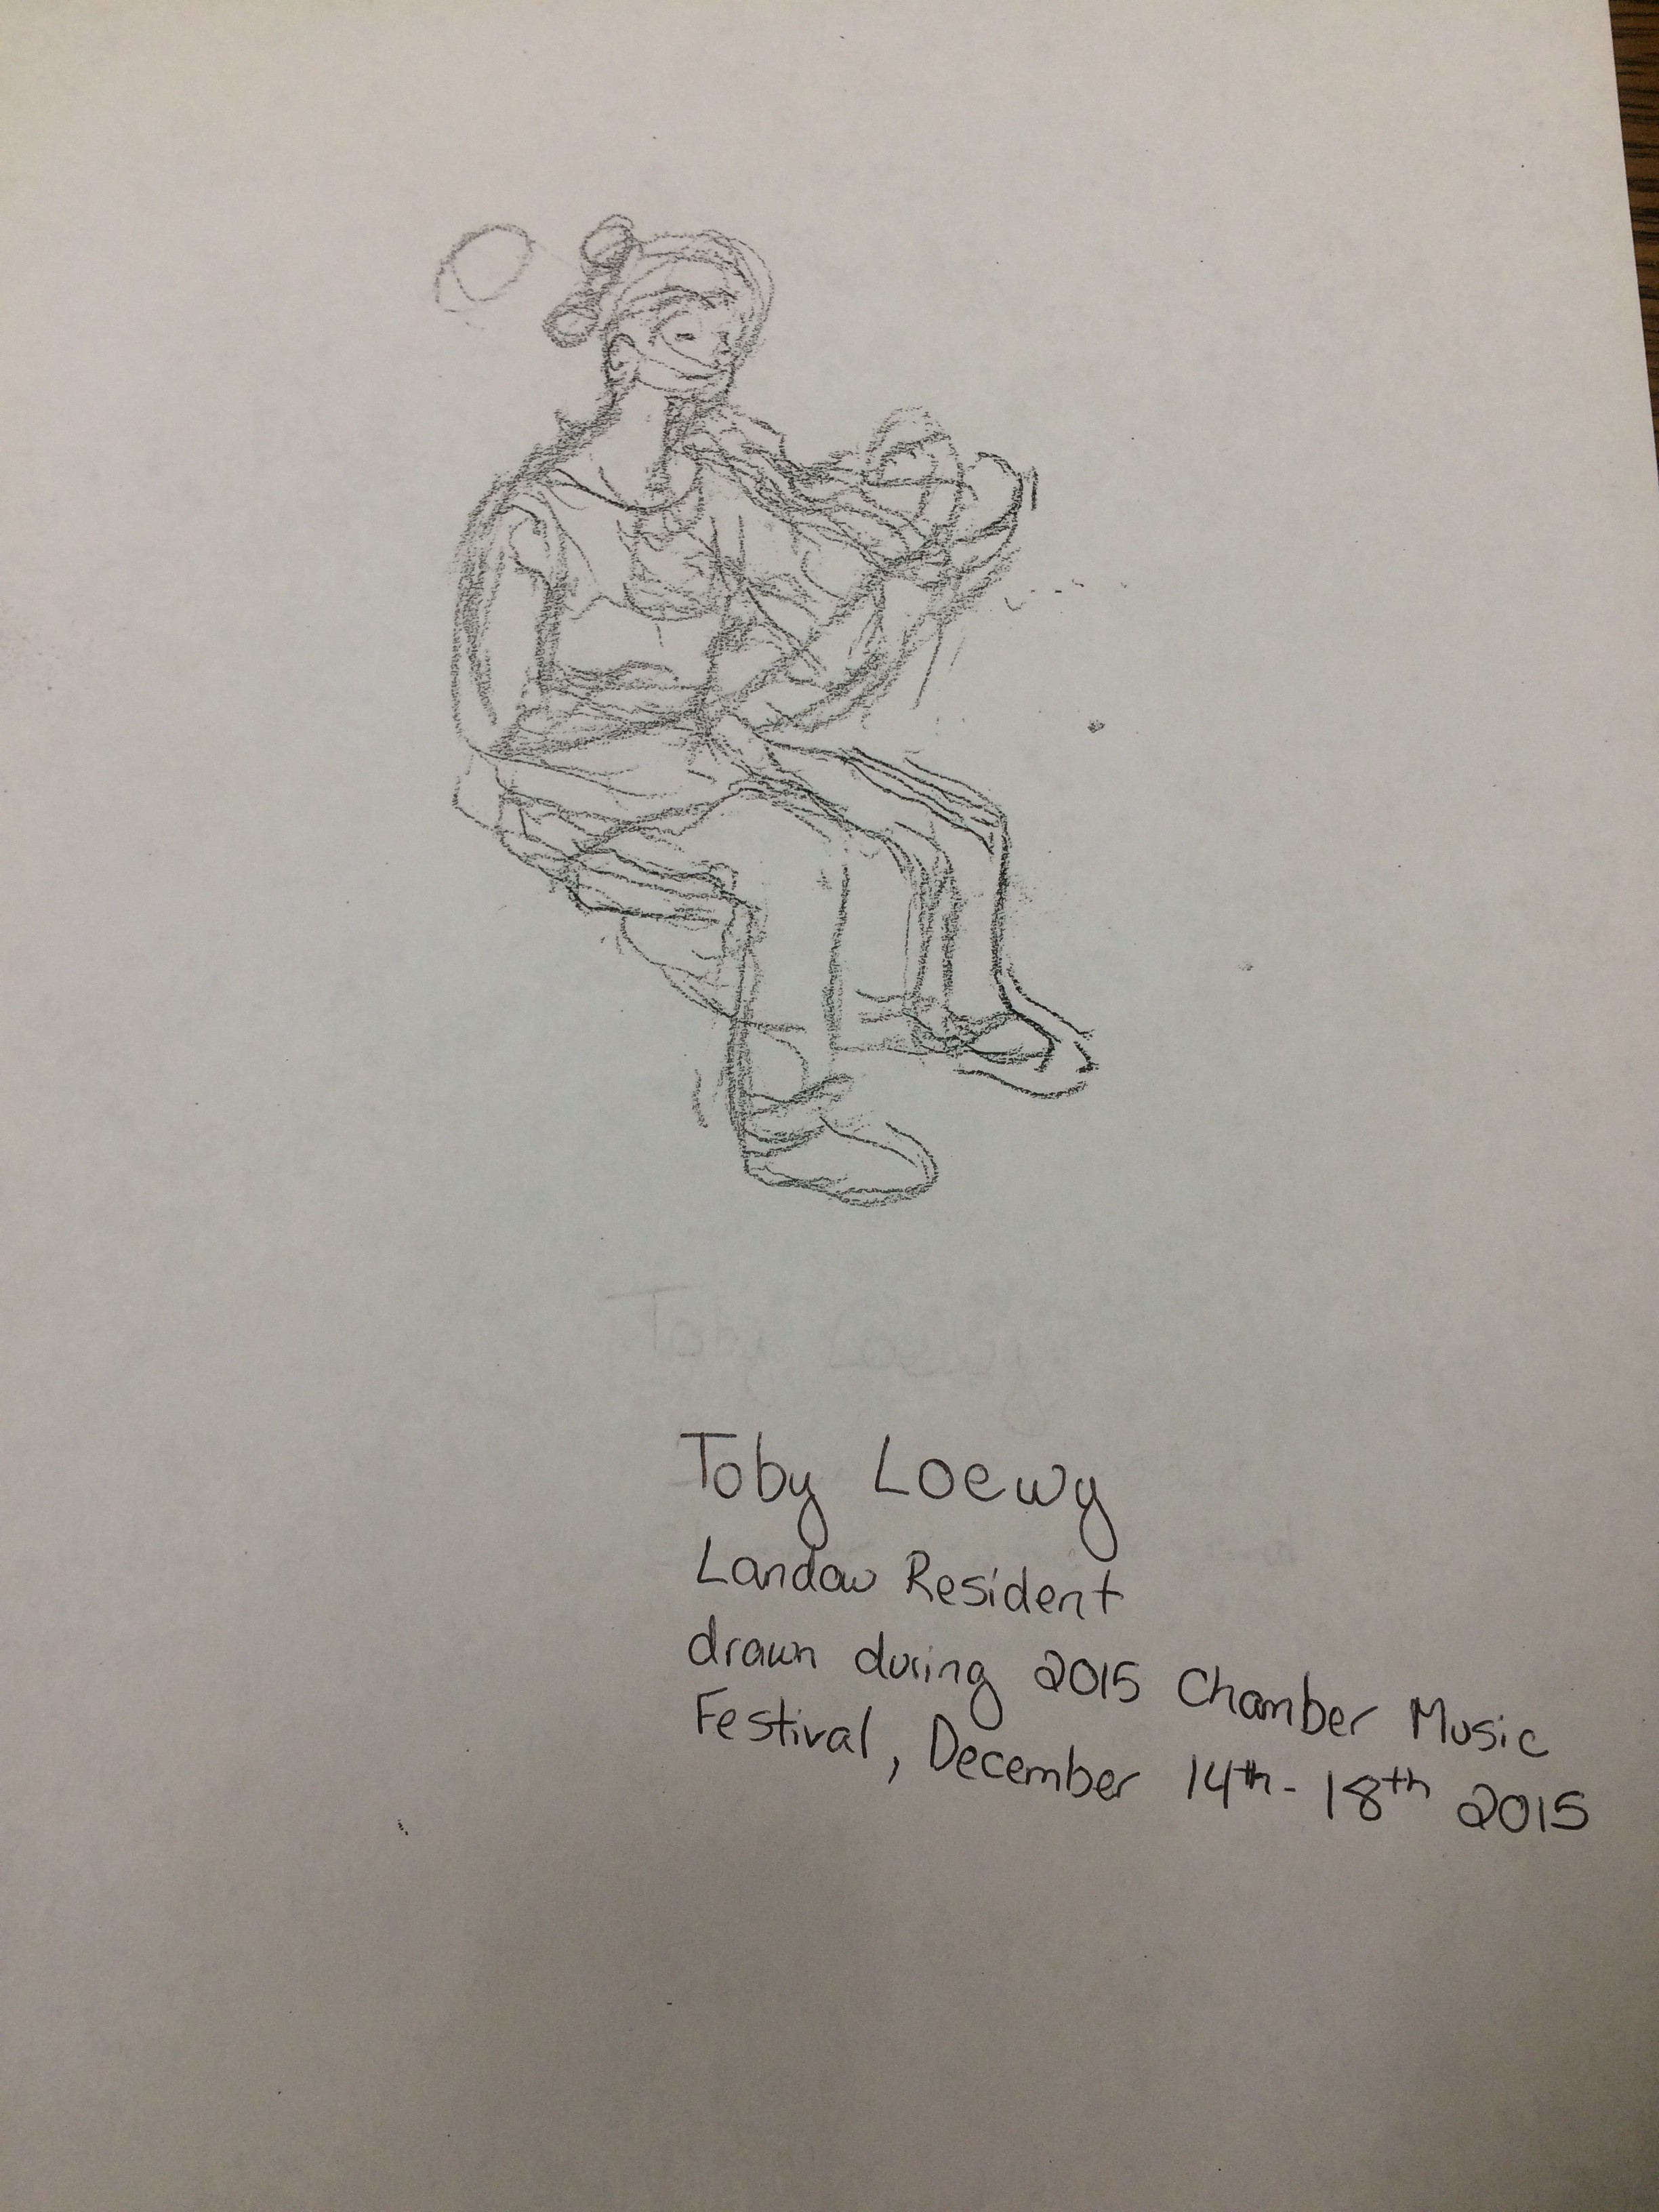 Toby Loewy'S drawing of a CMF performer